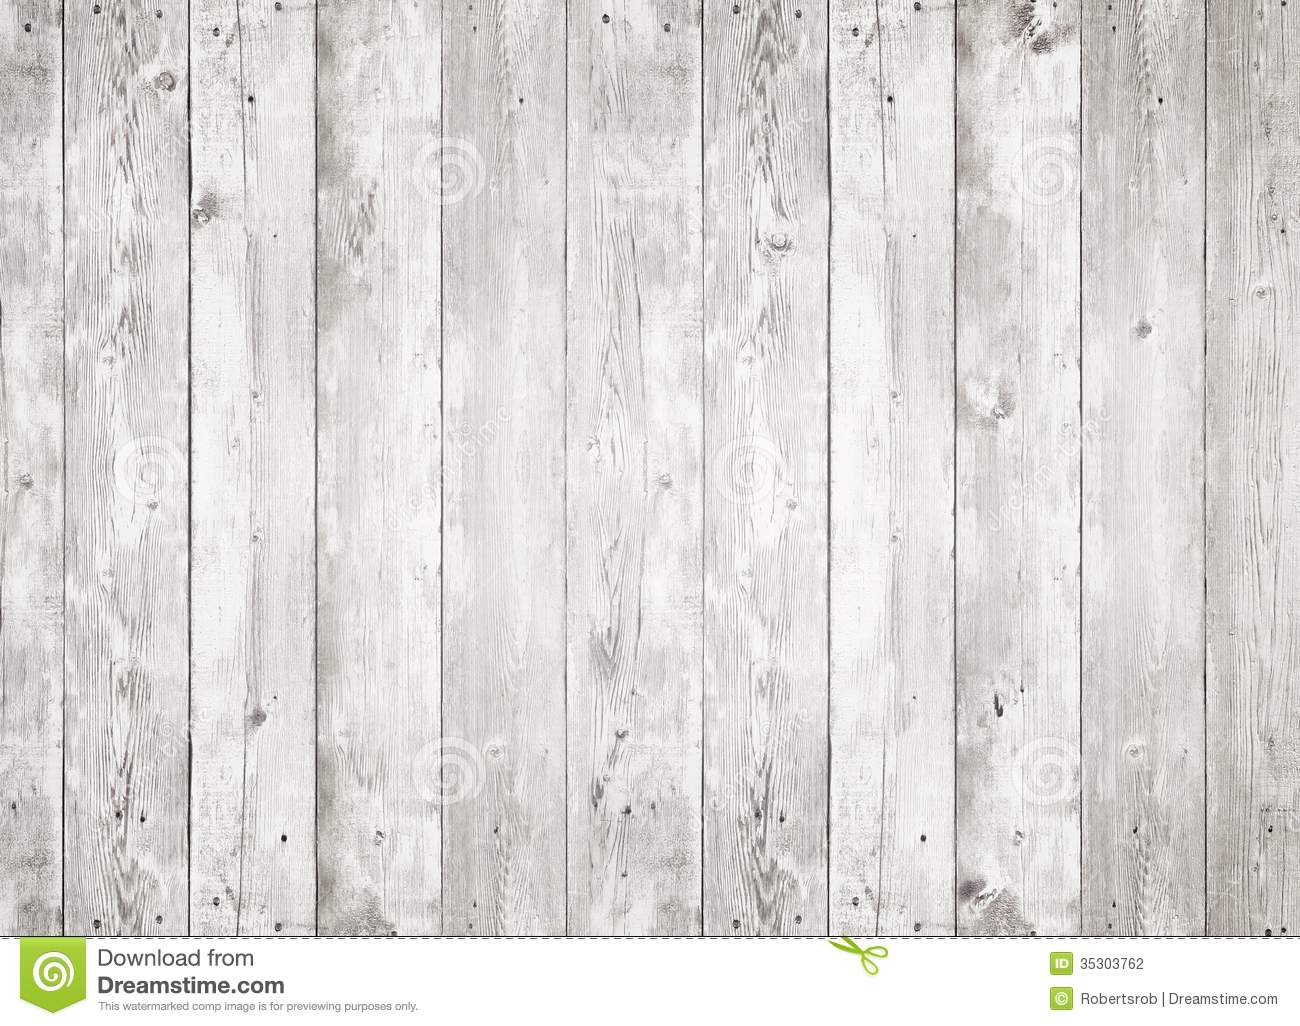 Wood stock photo. Image of decor, macro, plank, brown ...